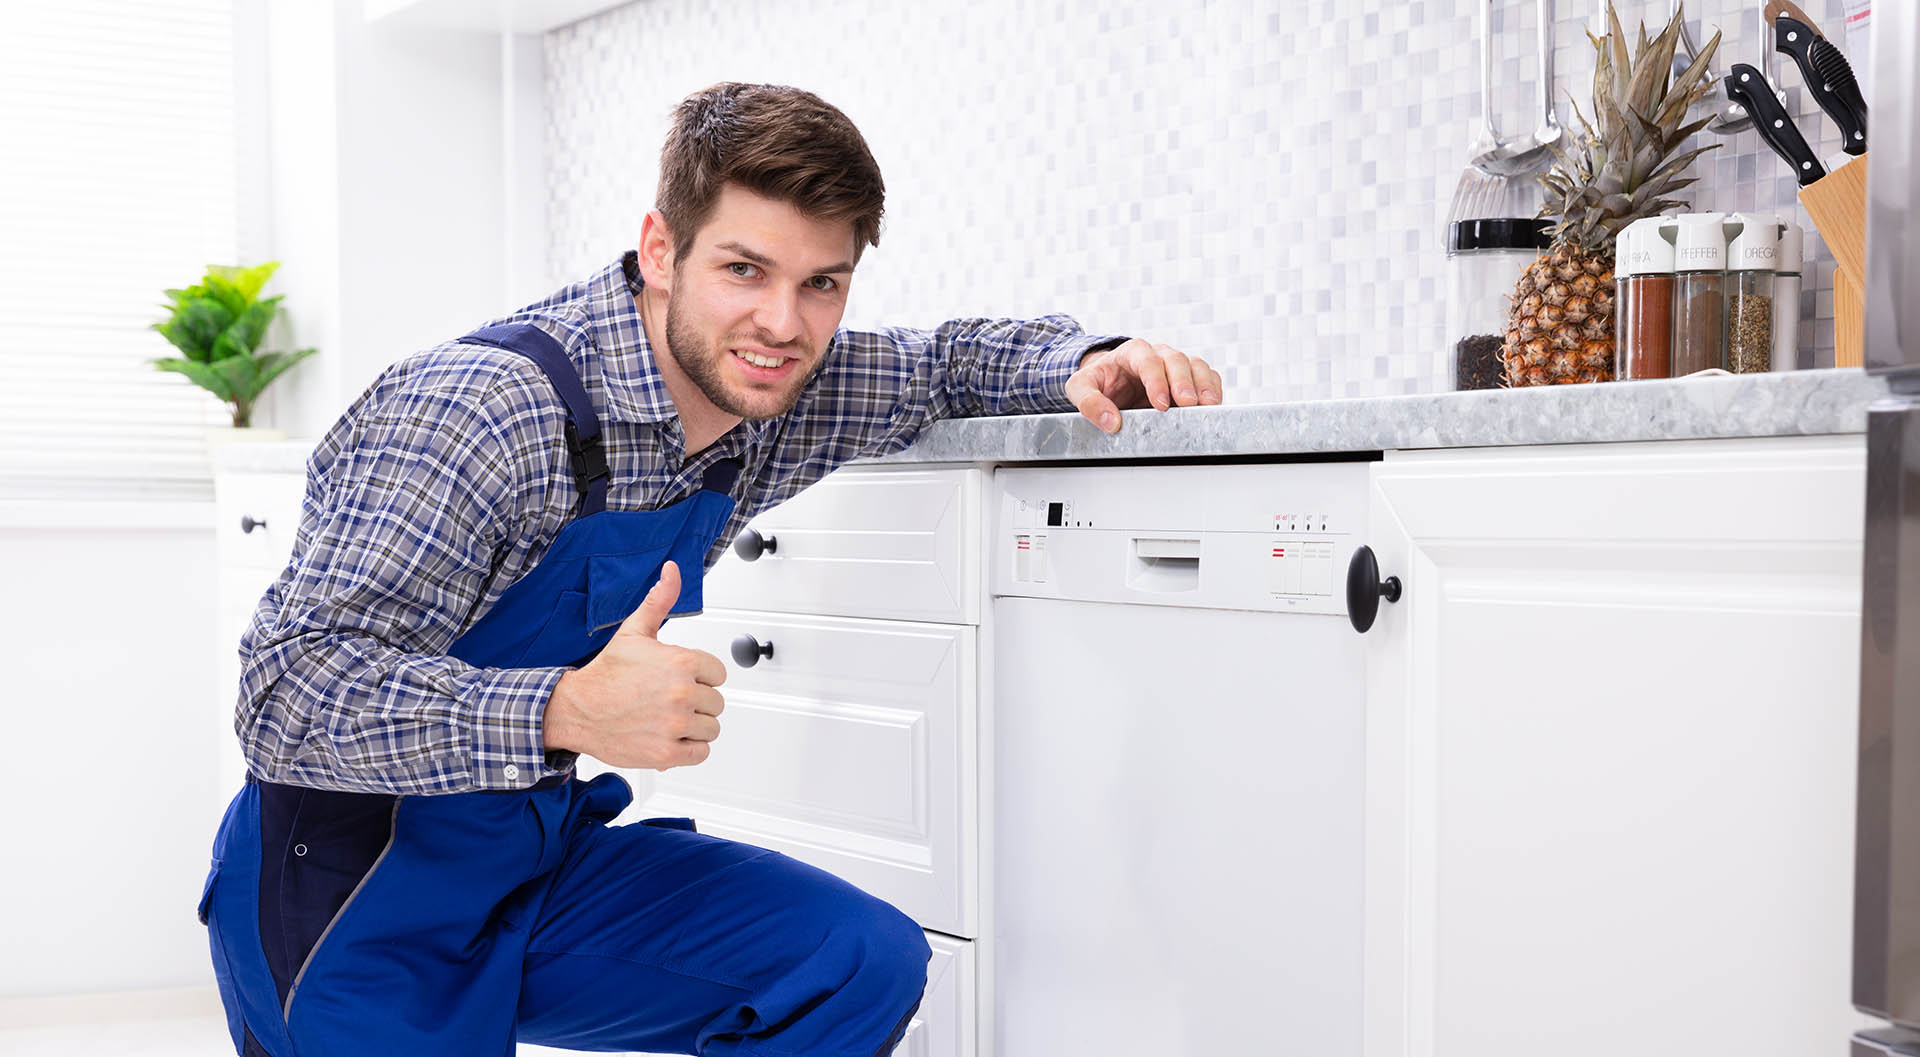 Happy Man Gesturing Thumbs Up in kitchen